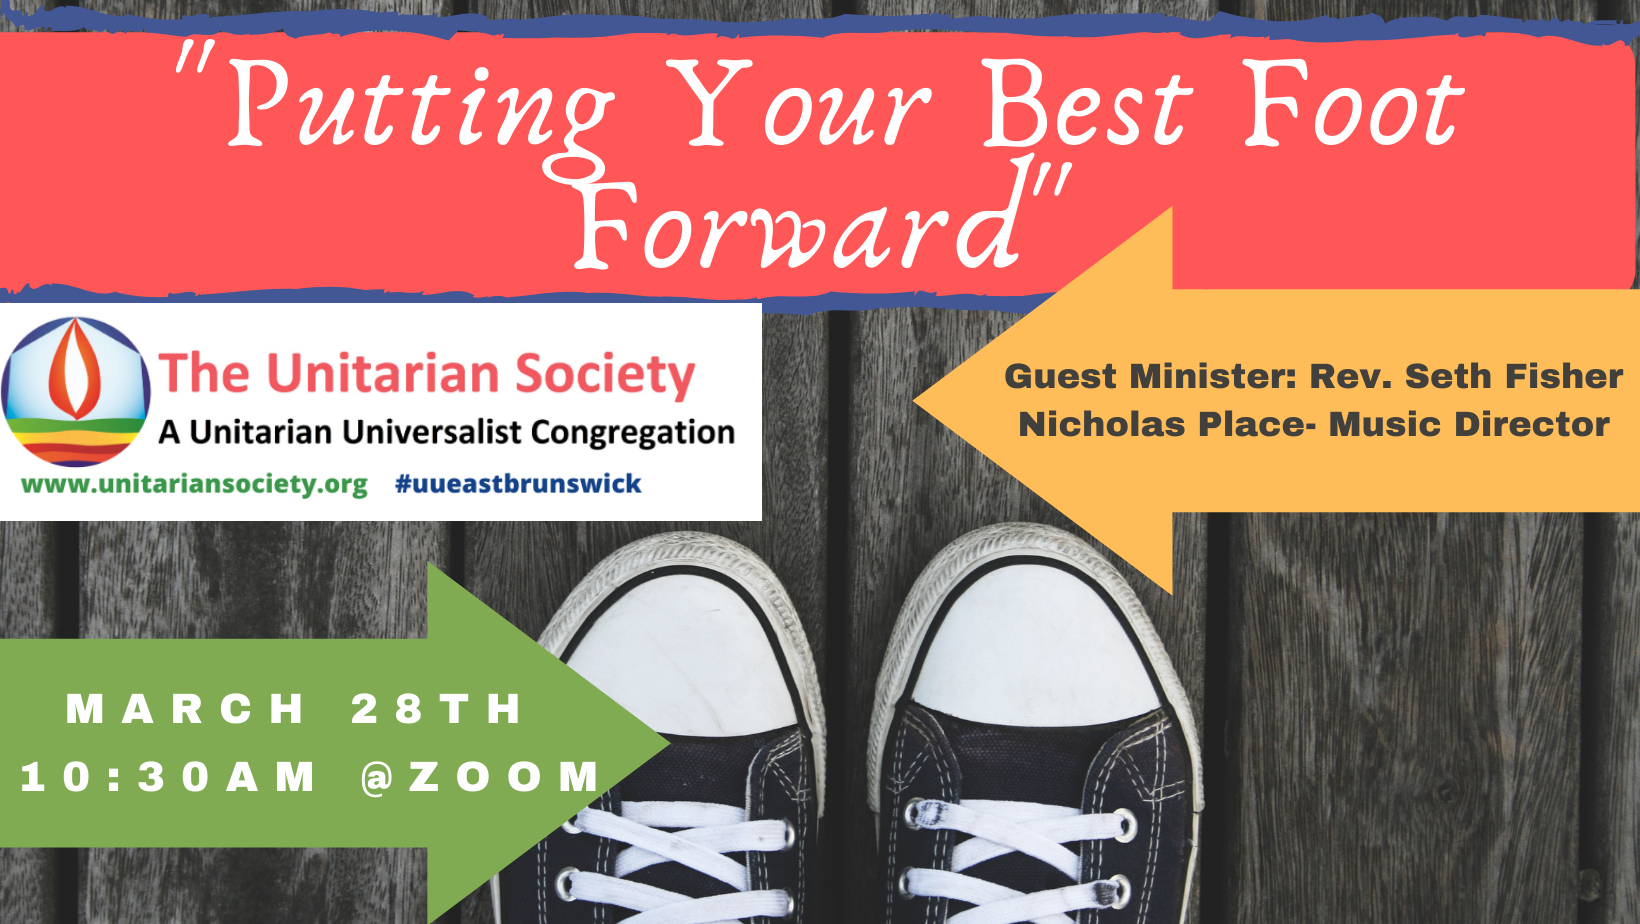 Sunday Service — March 28, 2021 @10:30AM (online) — Putting Your Best Foot Forward